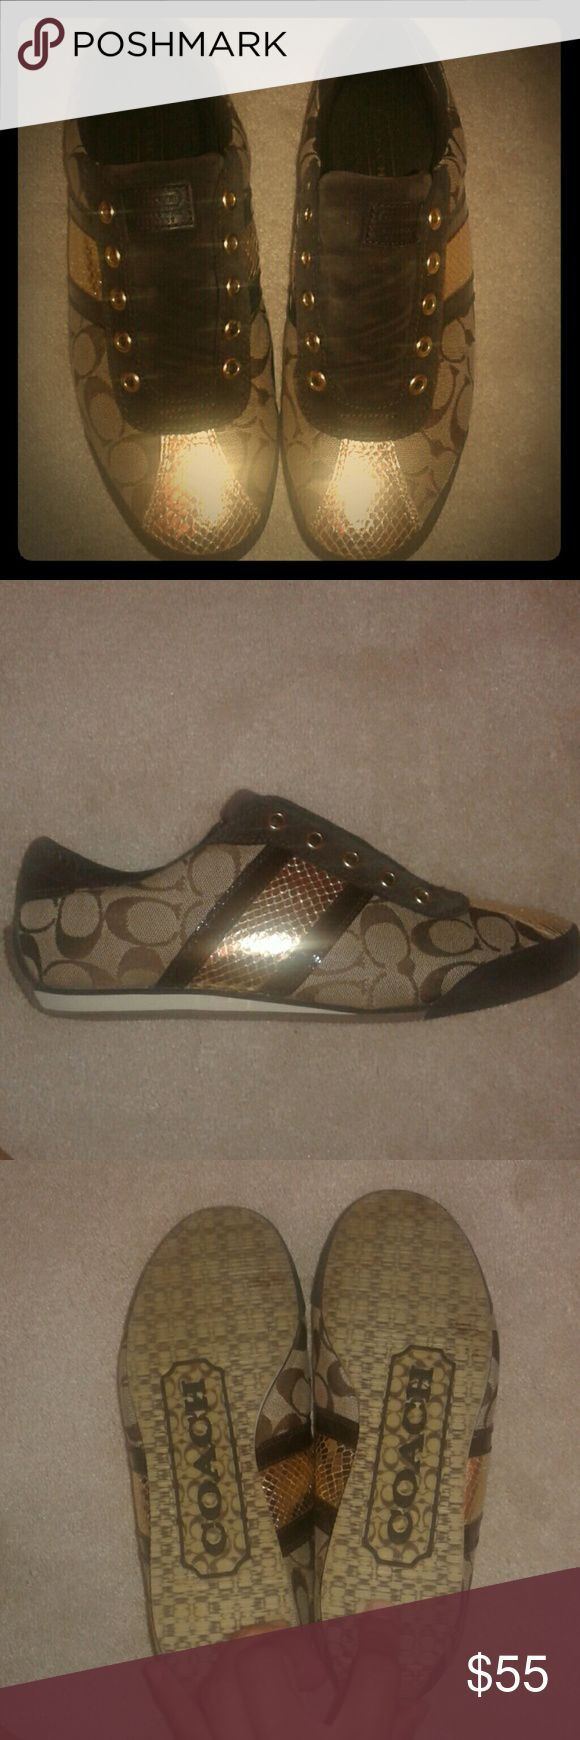 Coach sneakers Chocolate brown Coach sneakers. Super comfy and trendy to your casual outfit. The sneakers feature gold accents and a brown patent leather stripe. These are gently used. The sneakers are worn without laces. These are the perfect addition to your Coach collection! Shoes Sneakers